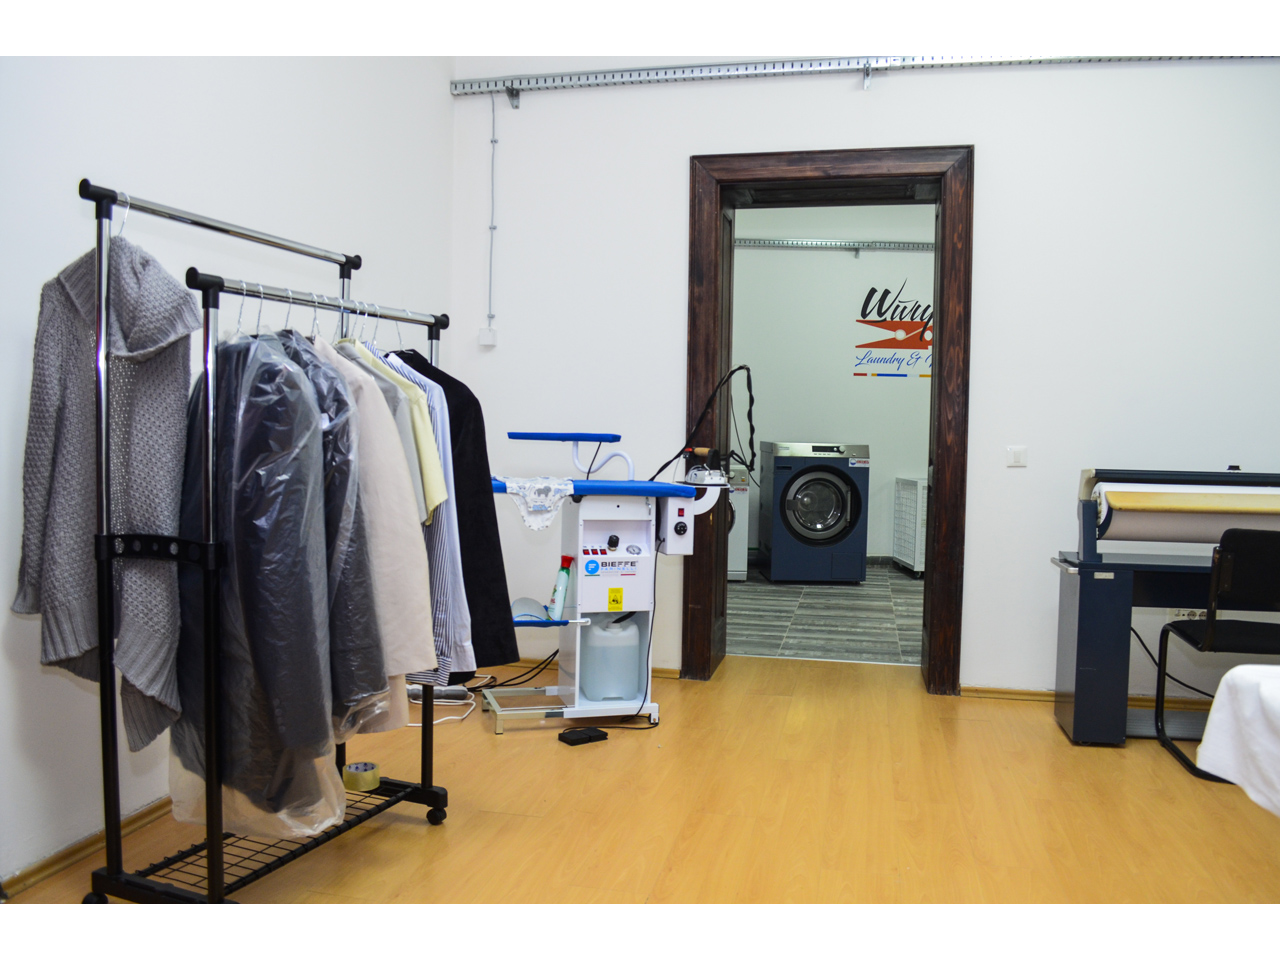 STIRK LAUNDRY WASHING AND IRONING SERVICE Dry-cleaning Beograd